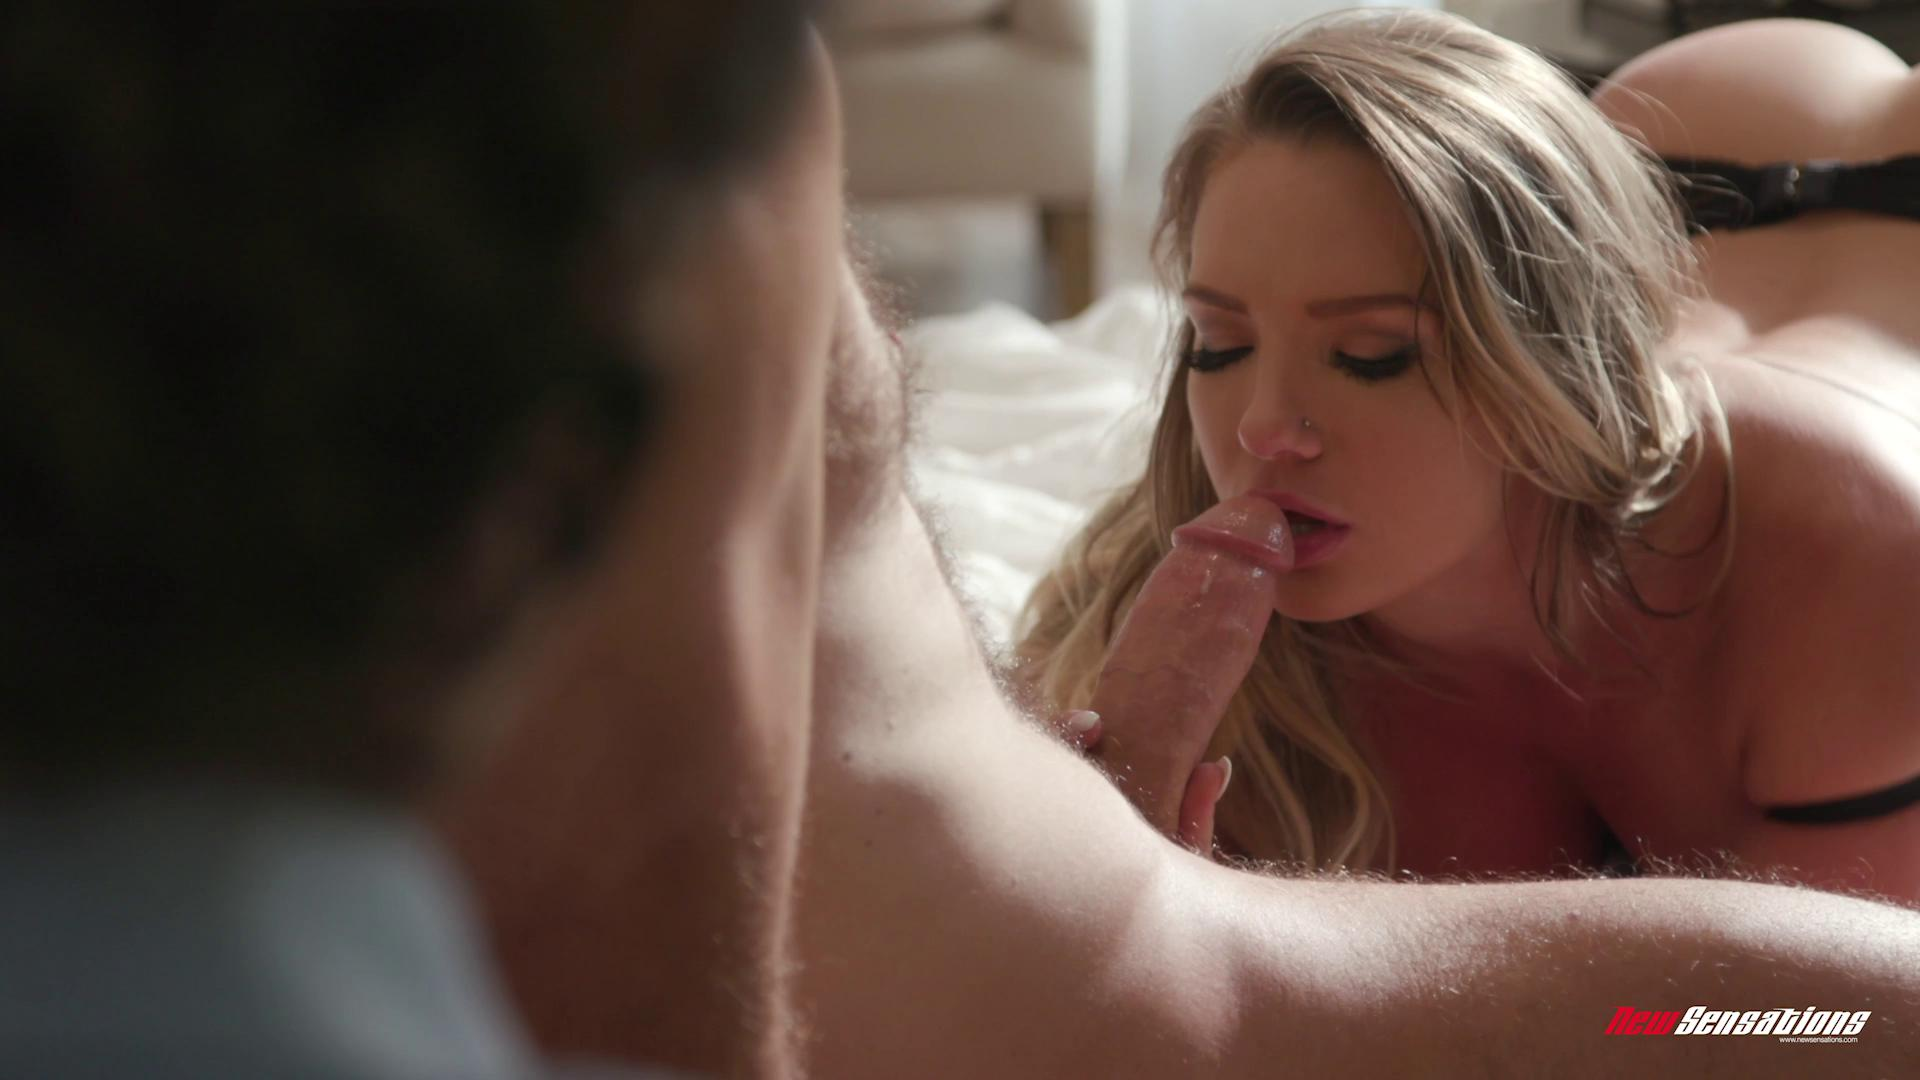 NewSensations – Cali Carter